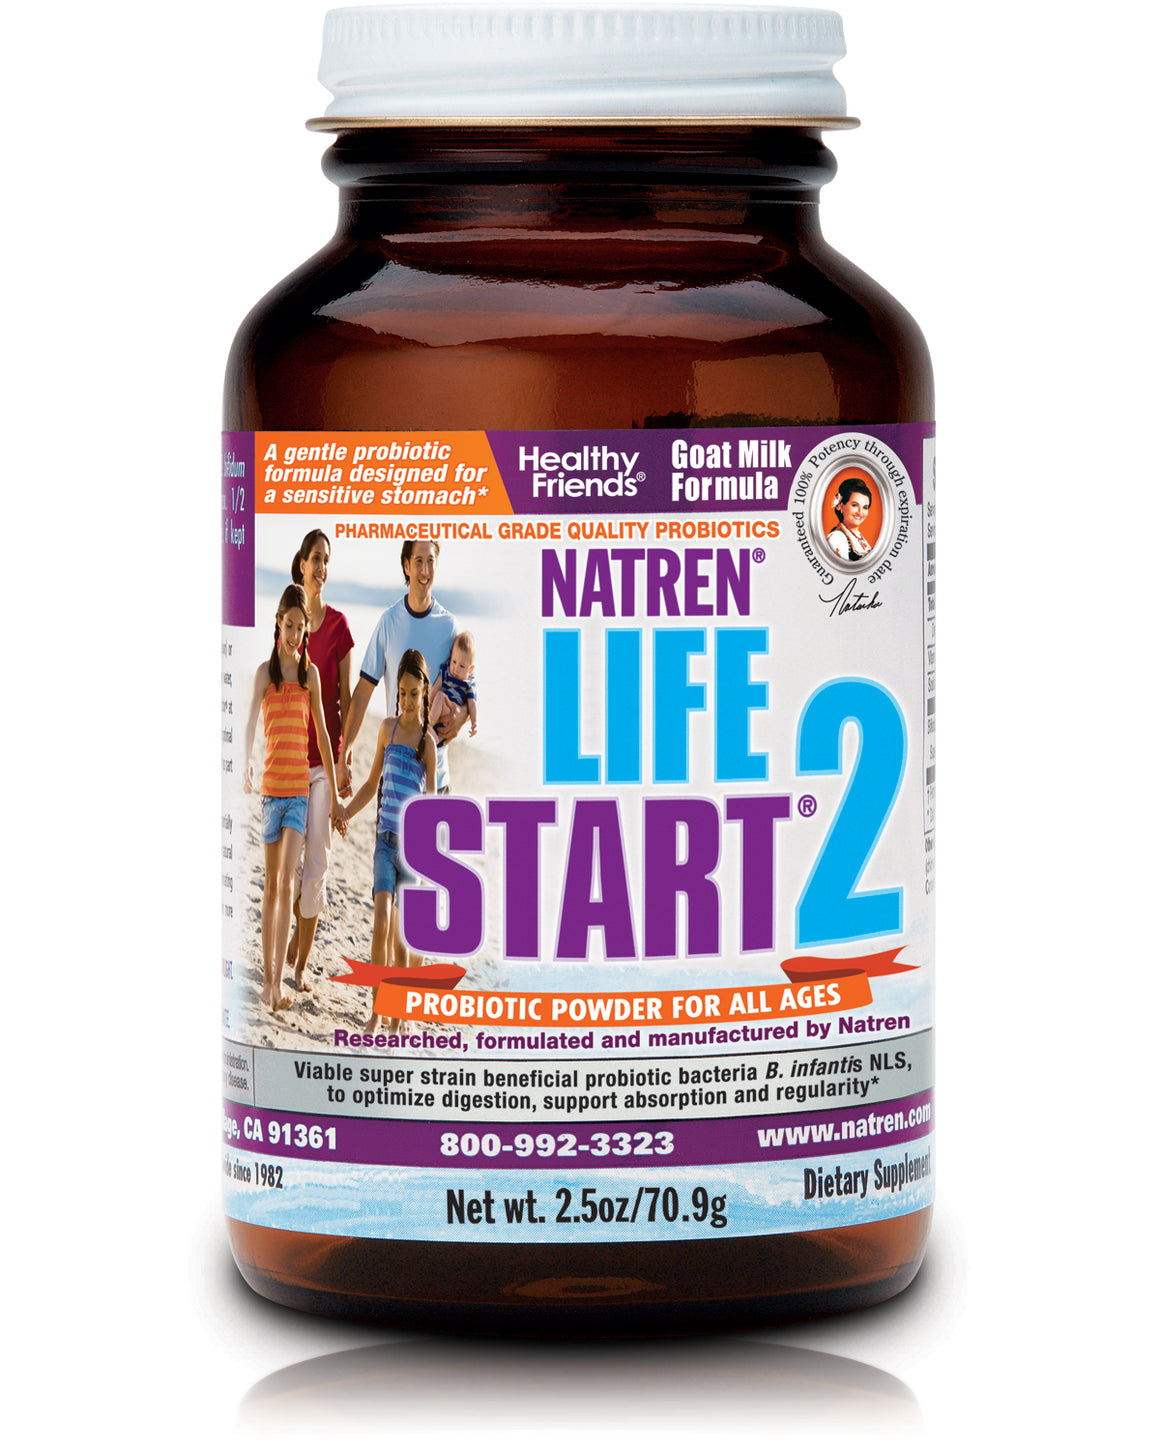 LIFE START 2 - Probiotic Powder